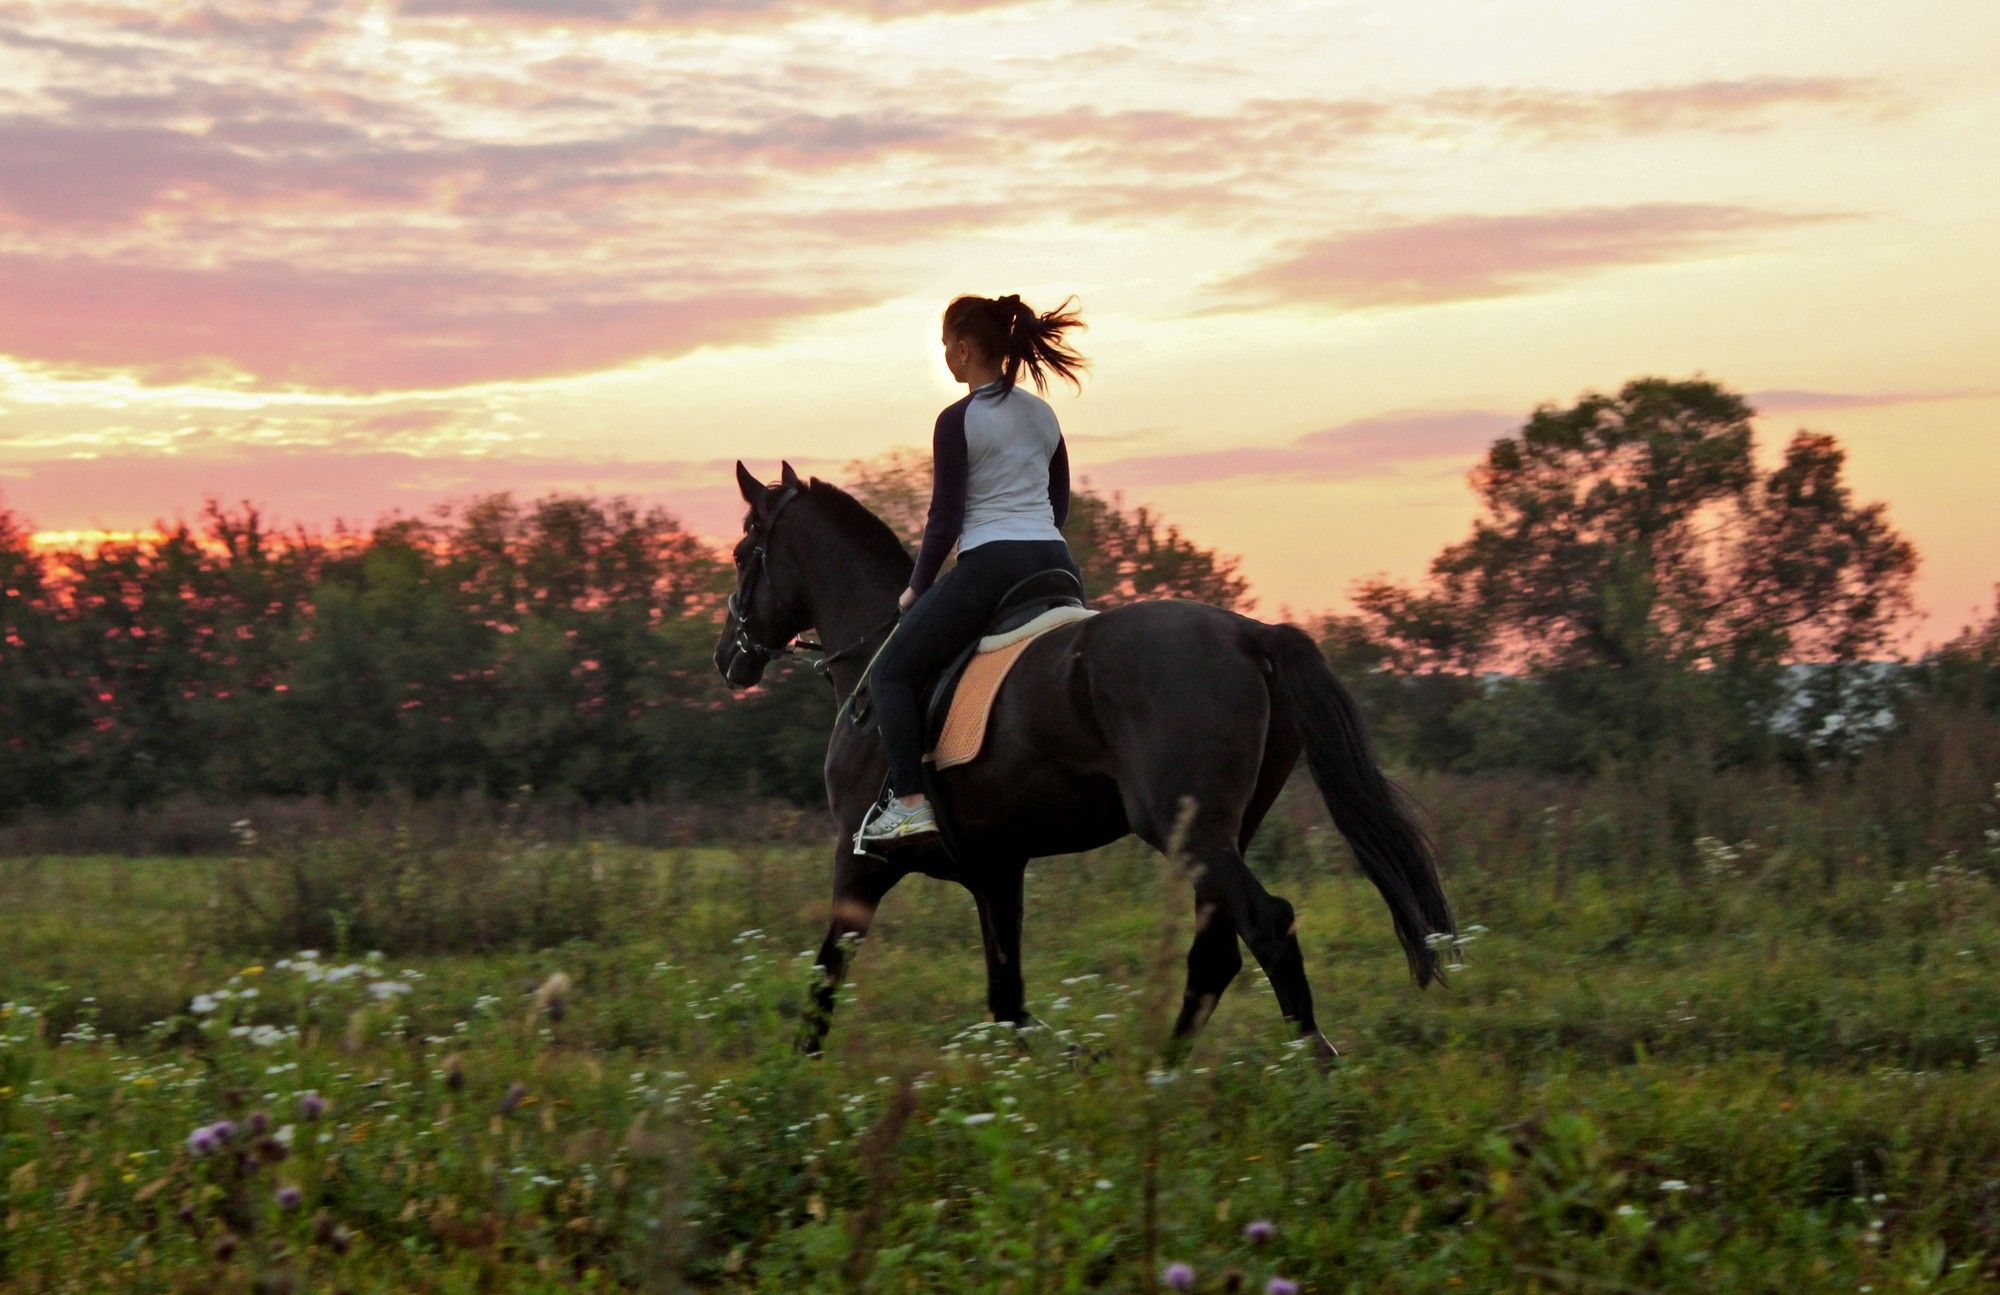 Horse Rider Wallpapers Top Free Horse Rider Backgrounds Wallpaperaccess